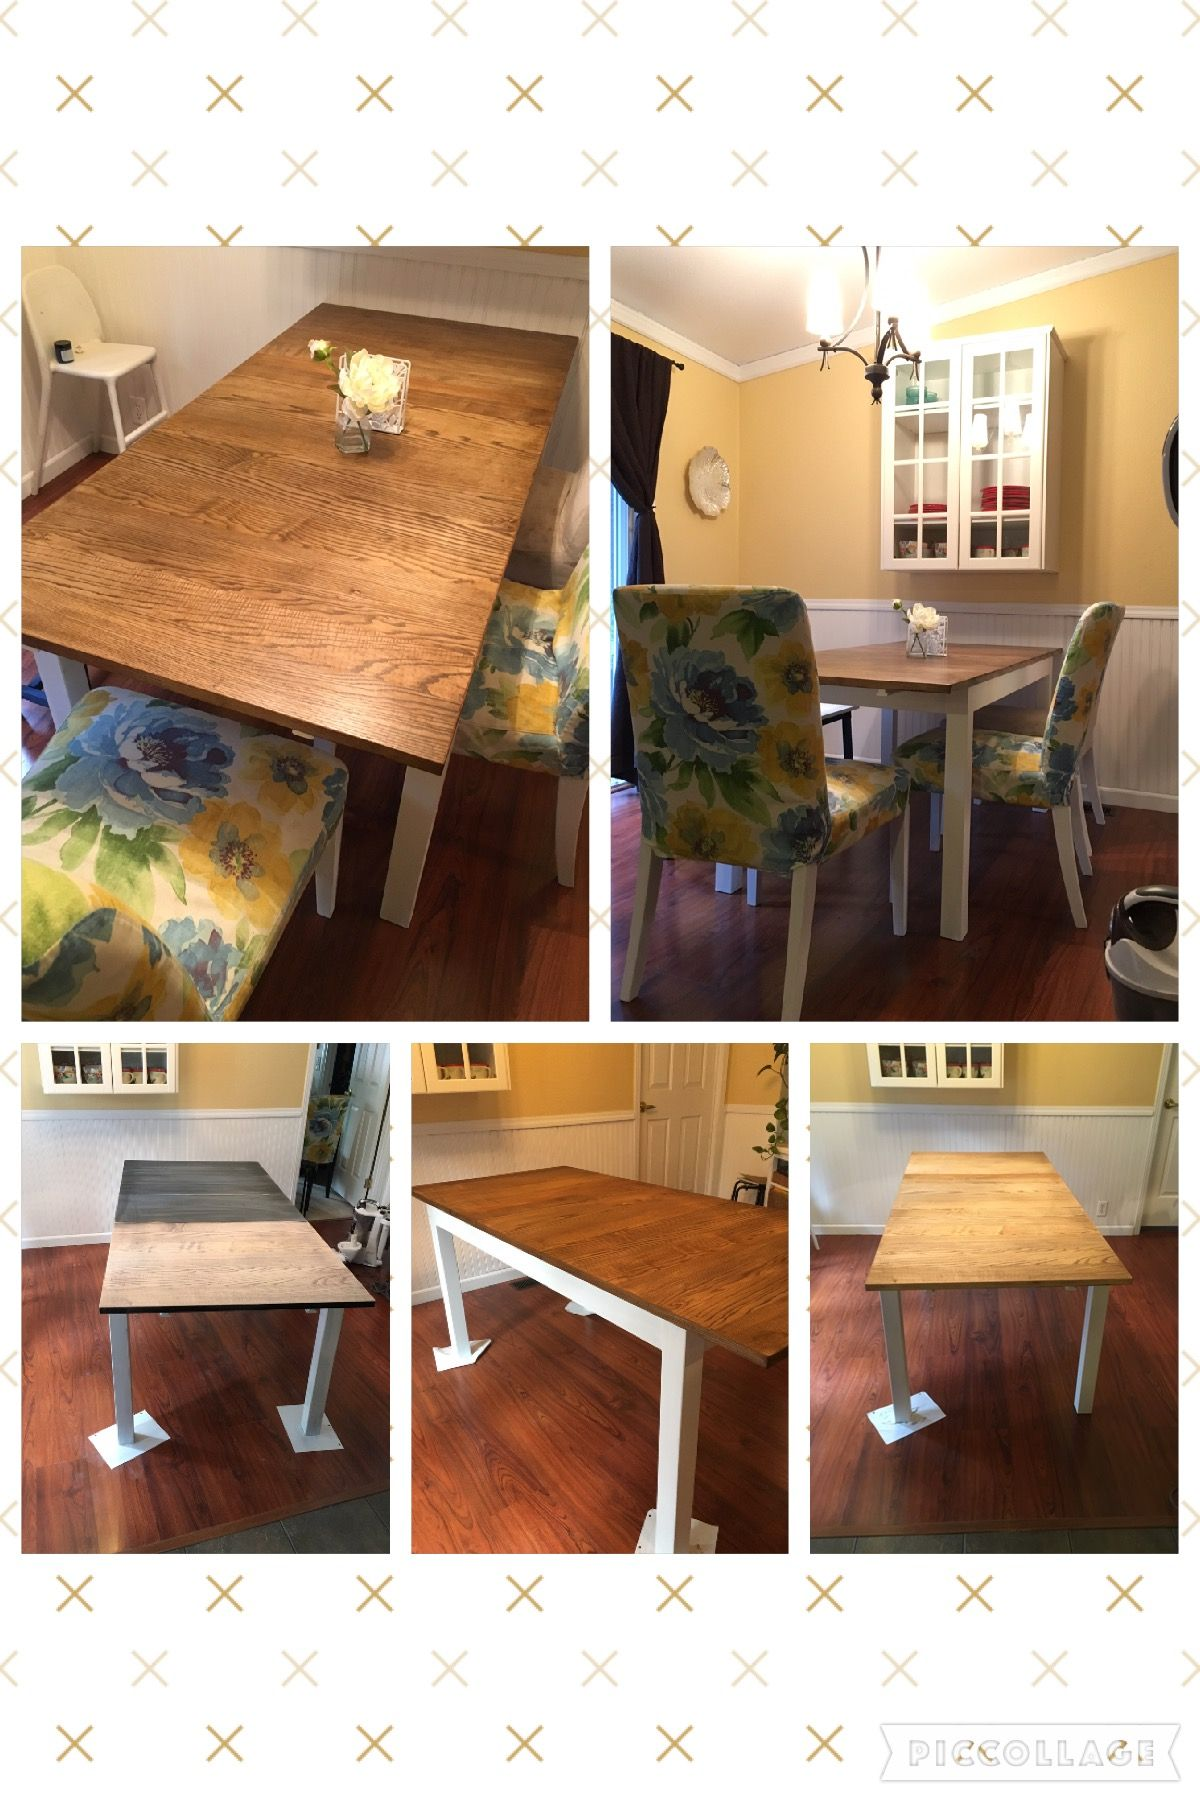 Ikea Bjursta table refinished Dining room Pinterest